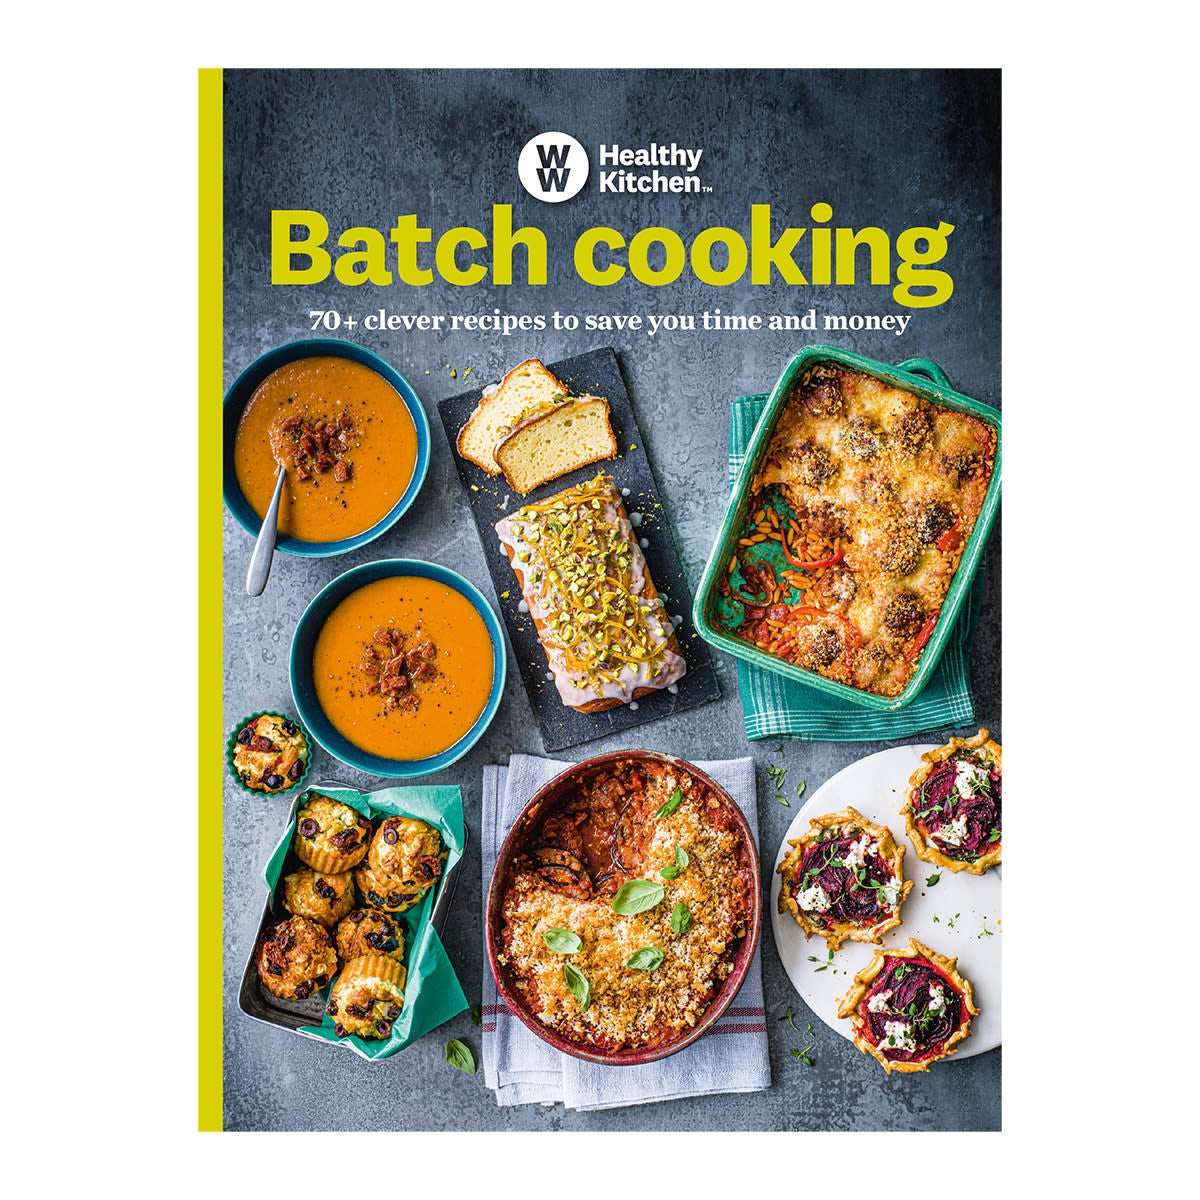 WW Batch Cooking Cookbook, 70 clever get-ahead recipes, prepping meals and snacks, save you time and money, homecooked meals